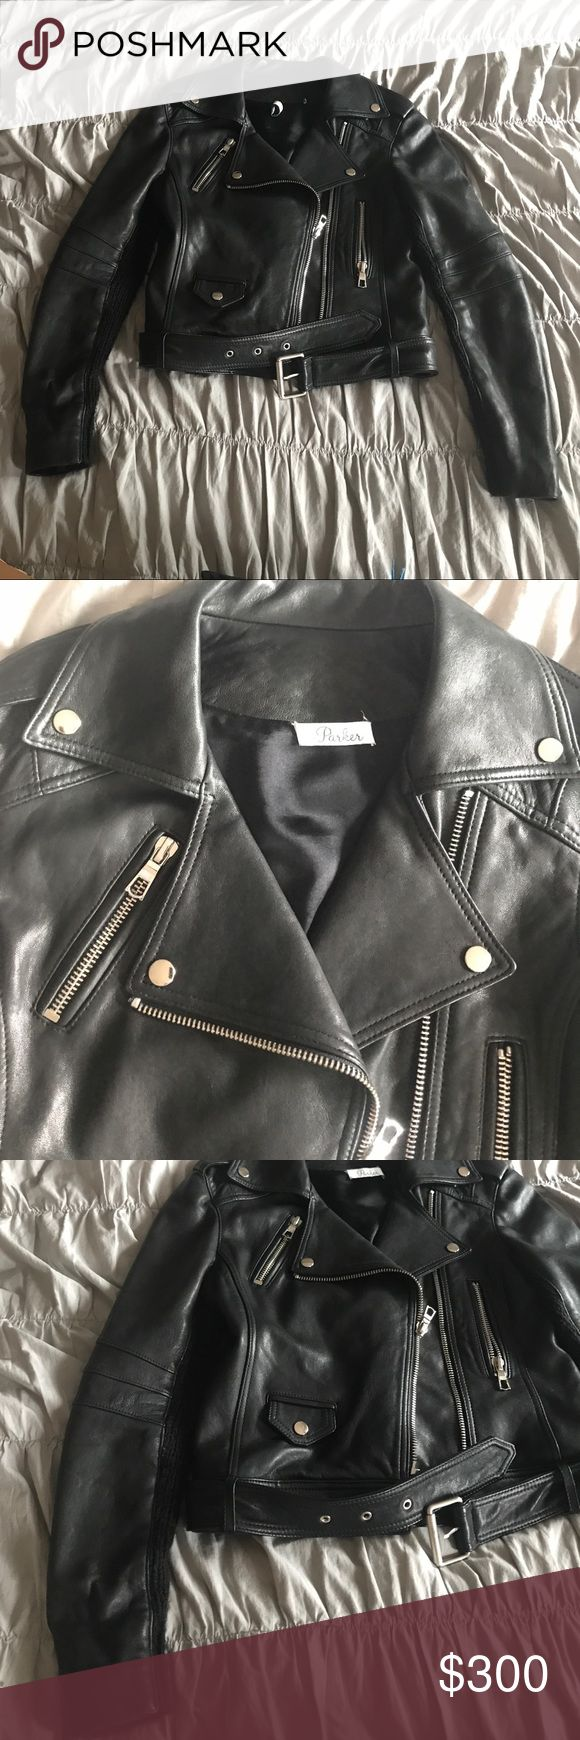 PARKER black leather jacket, sz 4 Parker black leather jacket with biker detail (belt/pockets) and sweater detail for a feminine touch. Sweater detail on the back and also on half of the sleeves (underneath the arms). Great for the fall and layering up in the winter. Parker Jackets & Coats